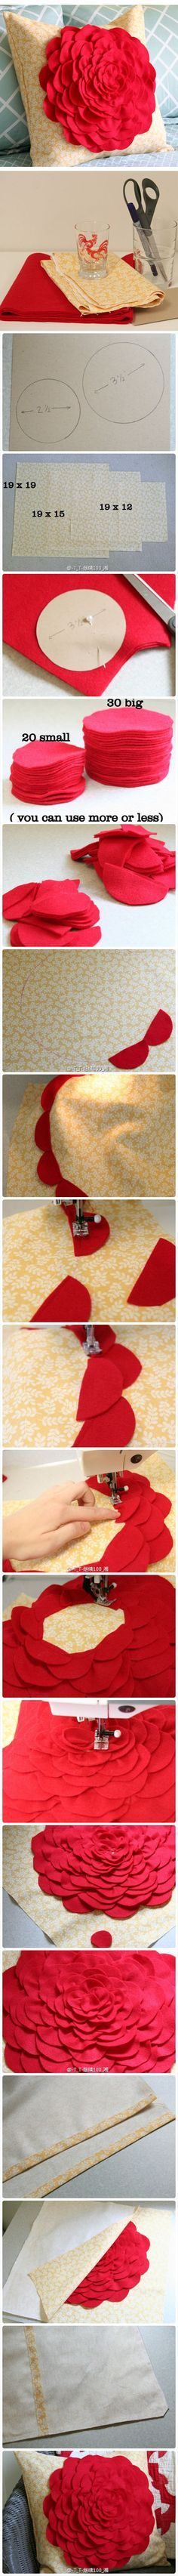 Huge flower pillow tutorial - Inspiring picture on Joyzz.com